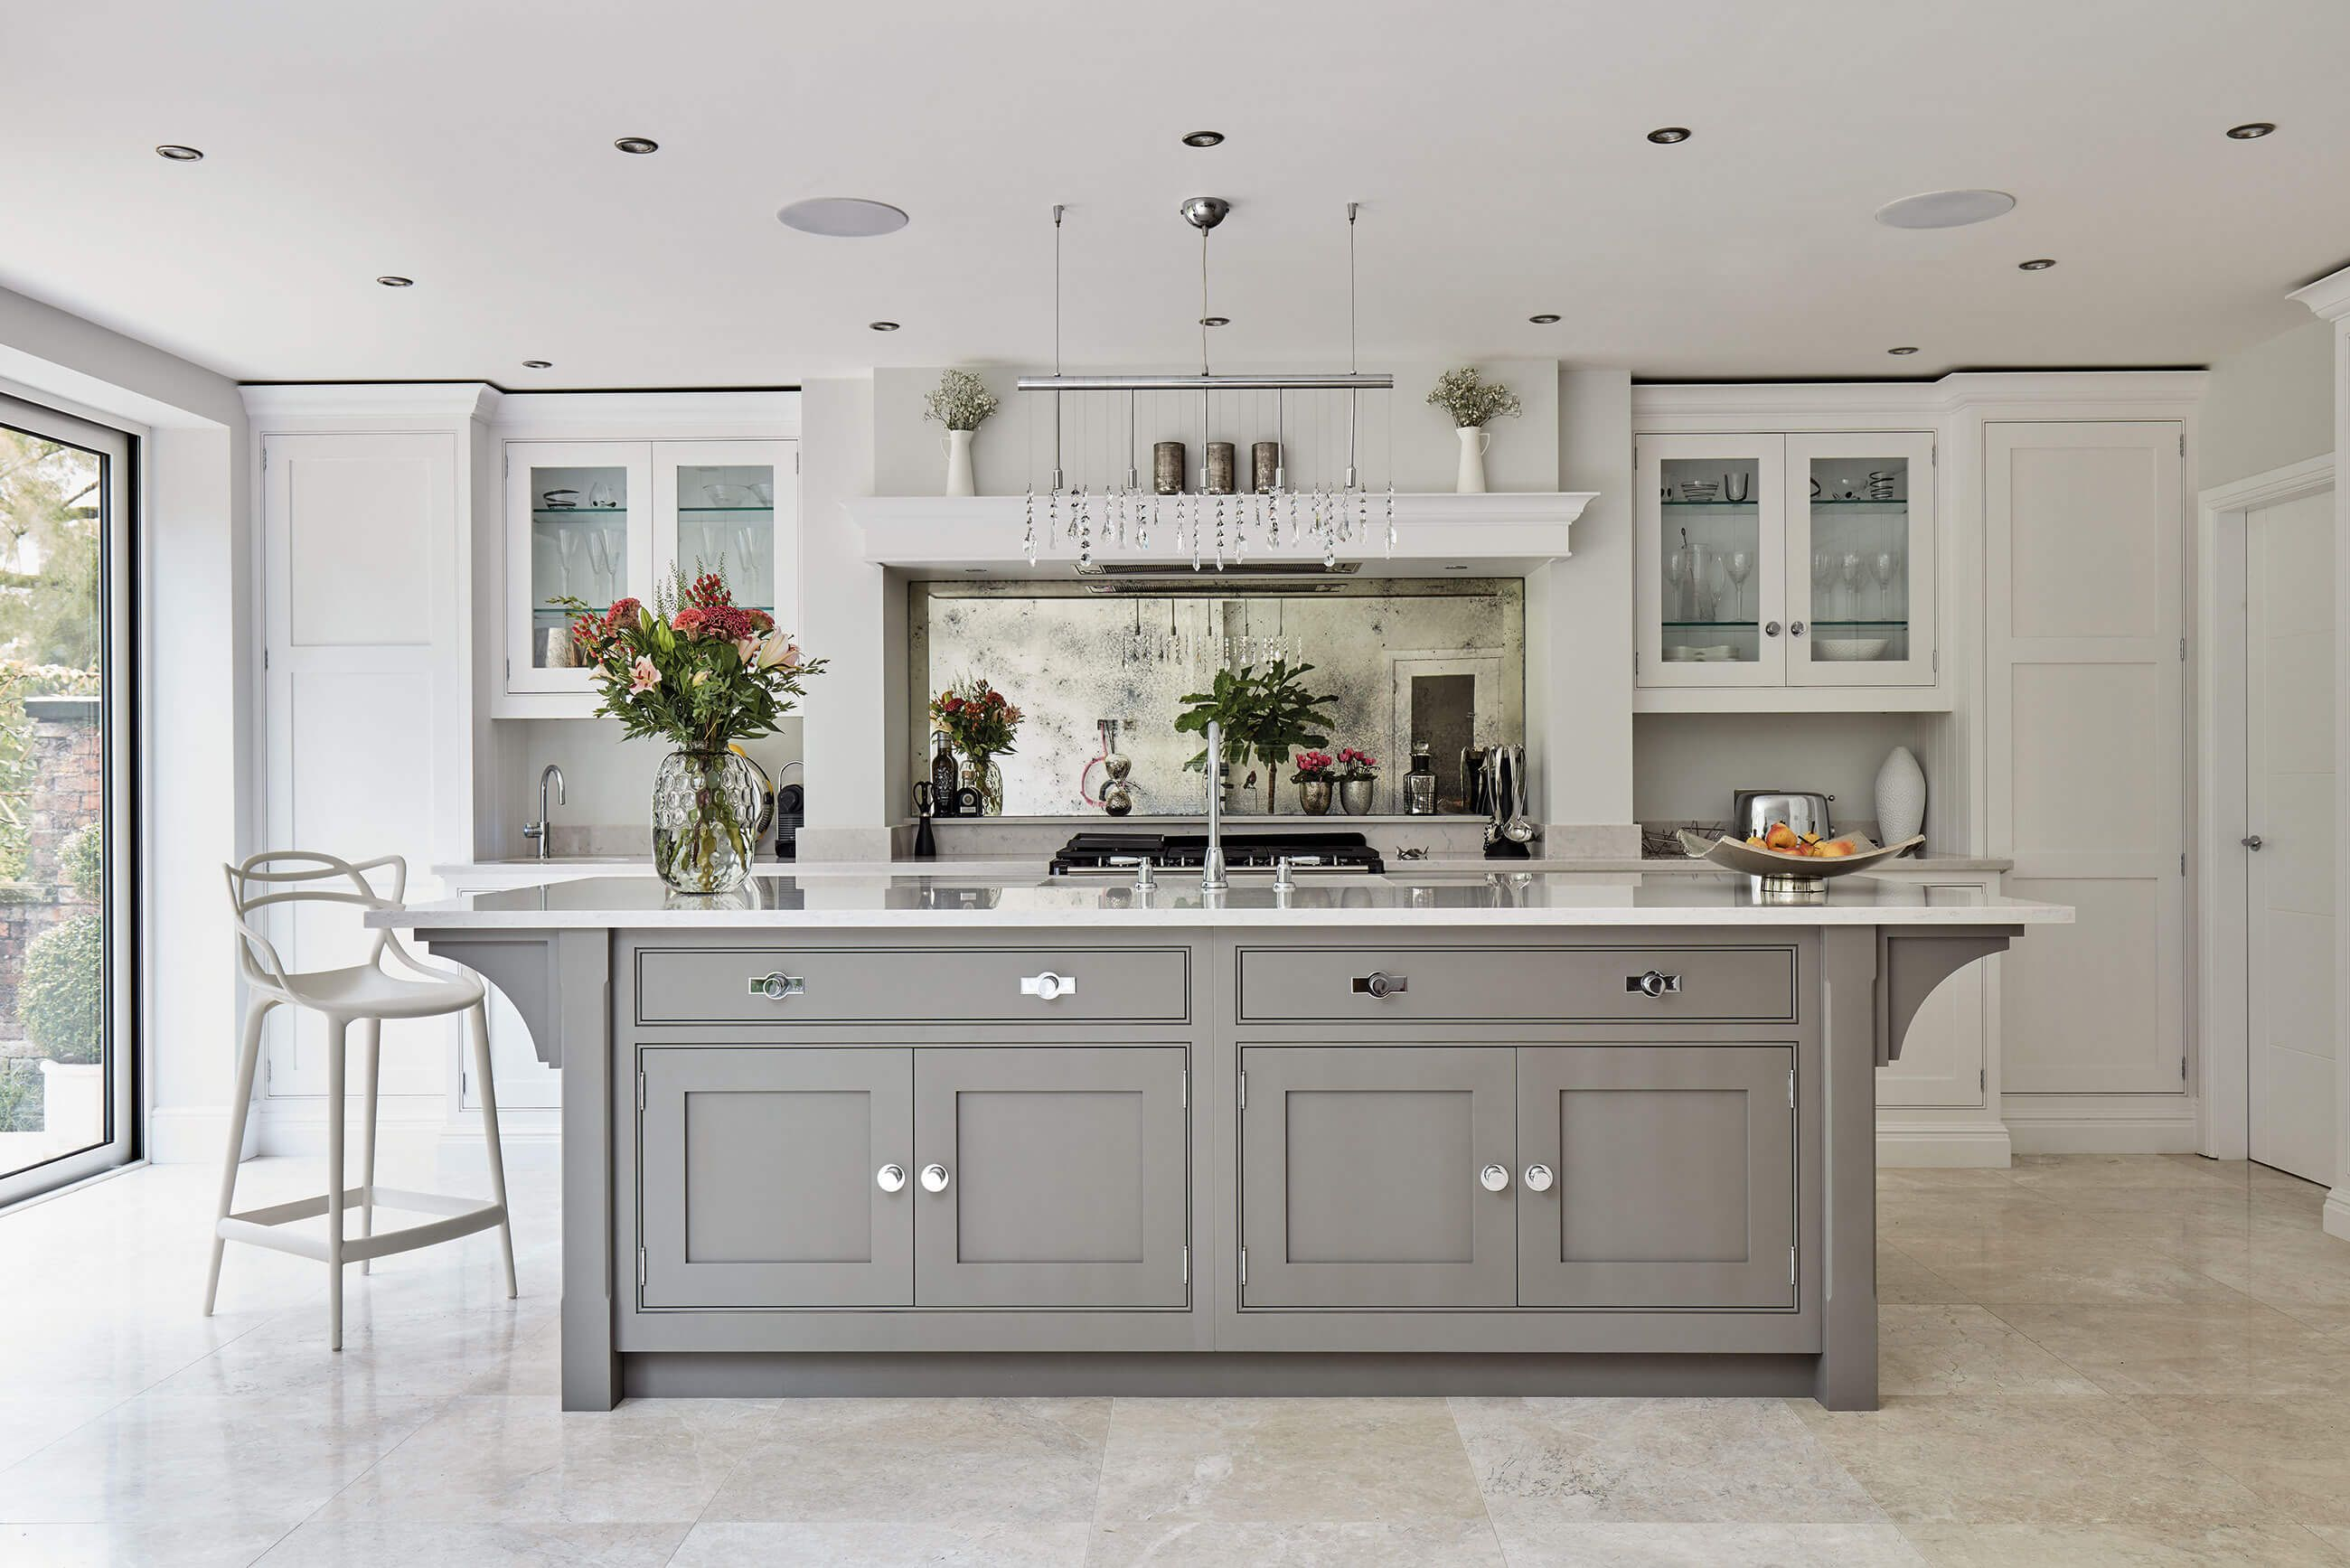 Shaker Kitchens in 2020 Kitchen design open, Interior